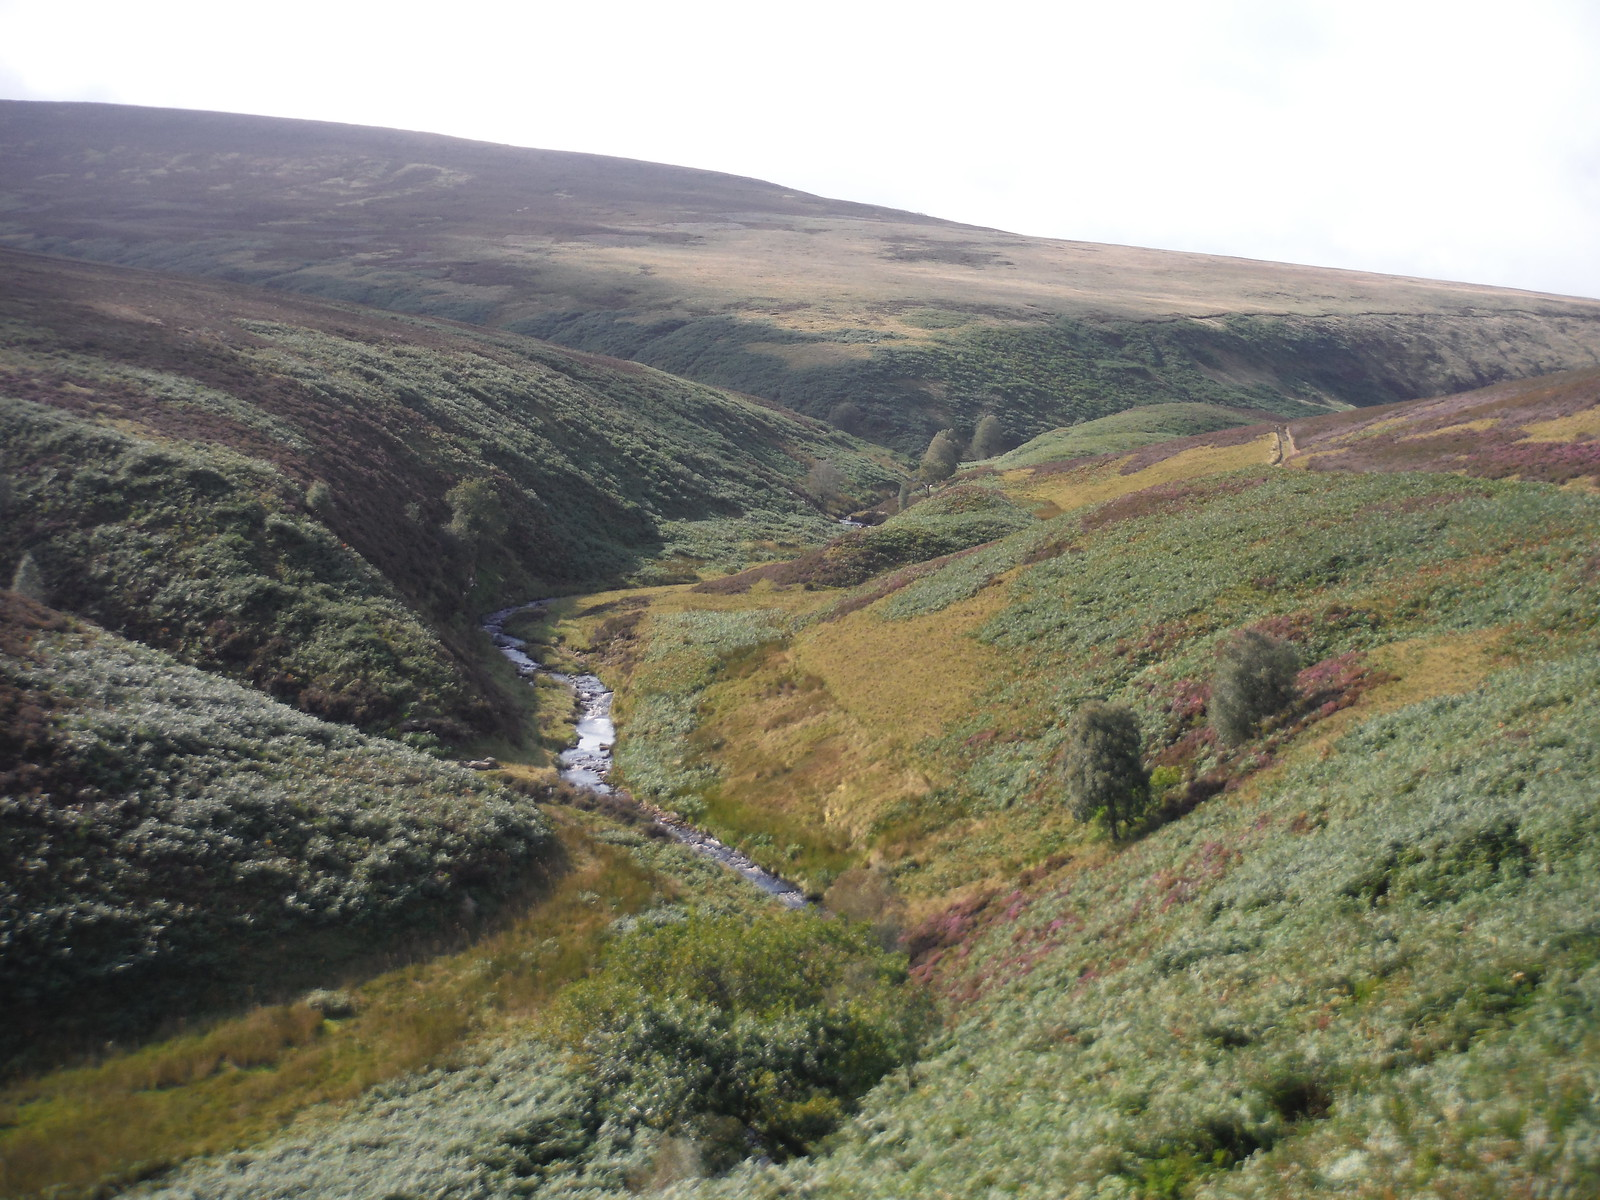 Upper Derwent Valley, with Lower and Upper Small Clough joining on the left SWC Walk 350 - Fairholmes Circular (via Bleaklow and Derwent Head)